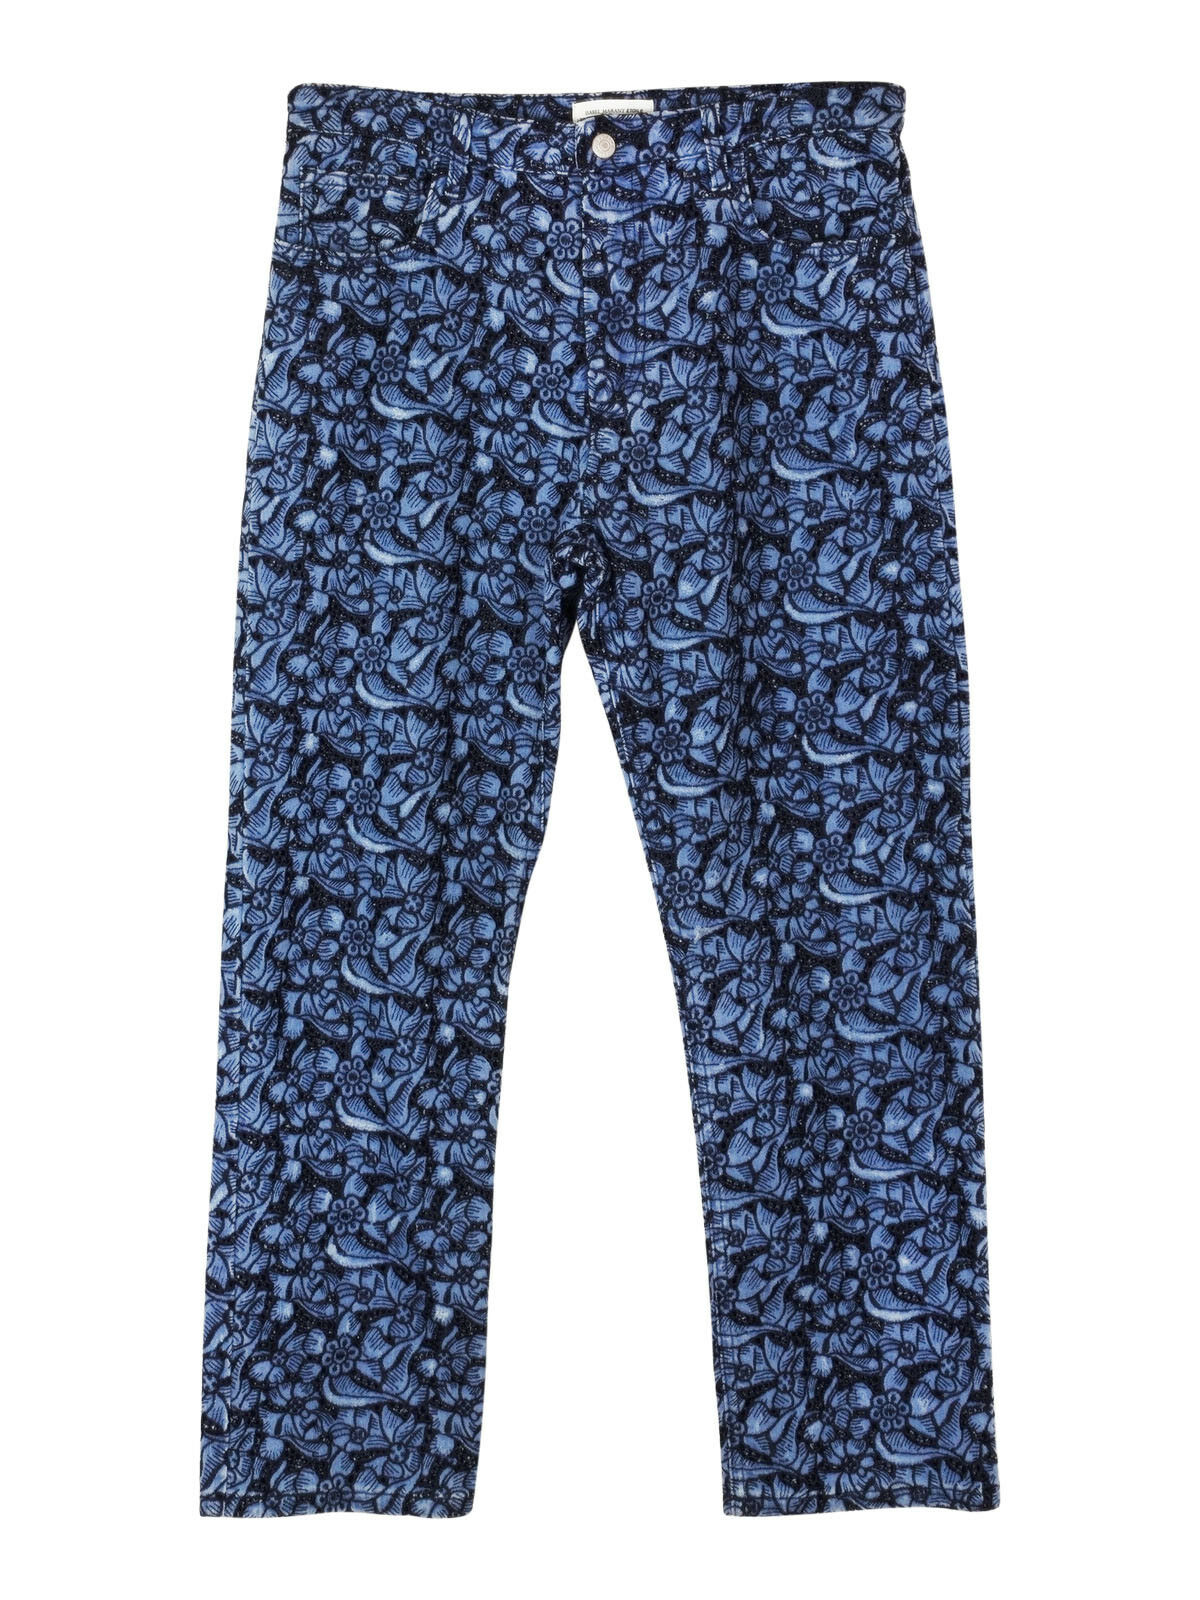 NEW Isabel Marant Etoile embroidered floral skinny fit jeans in bluee